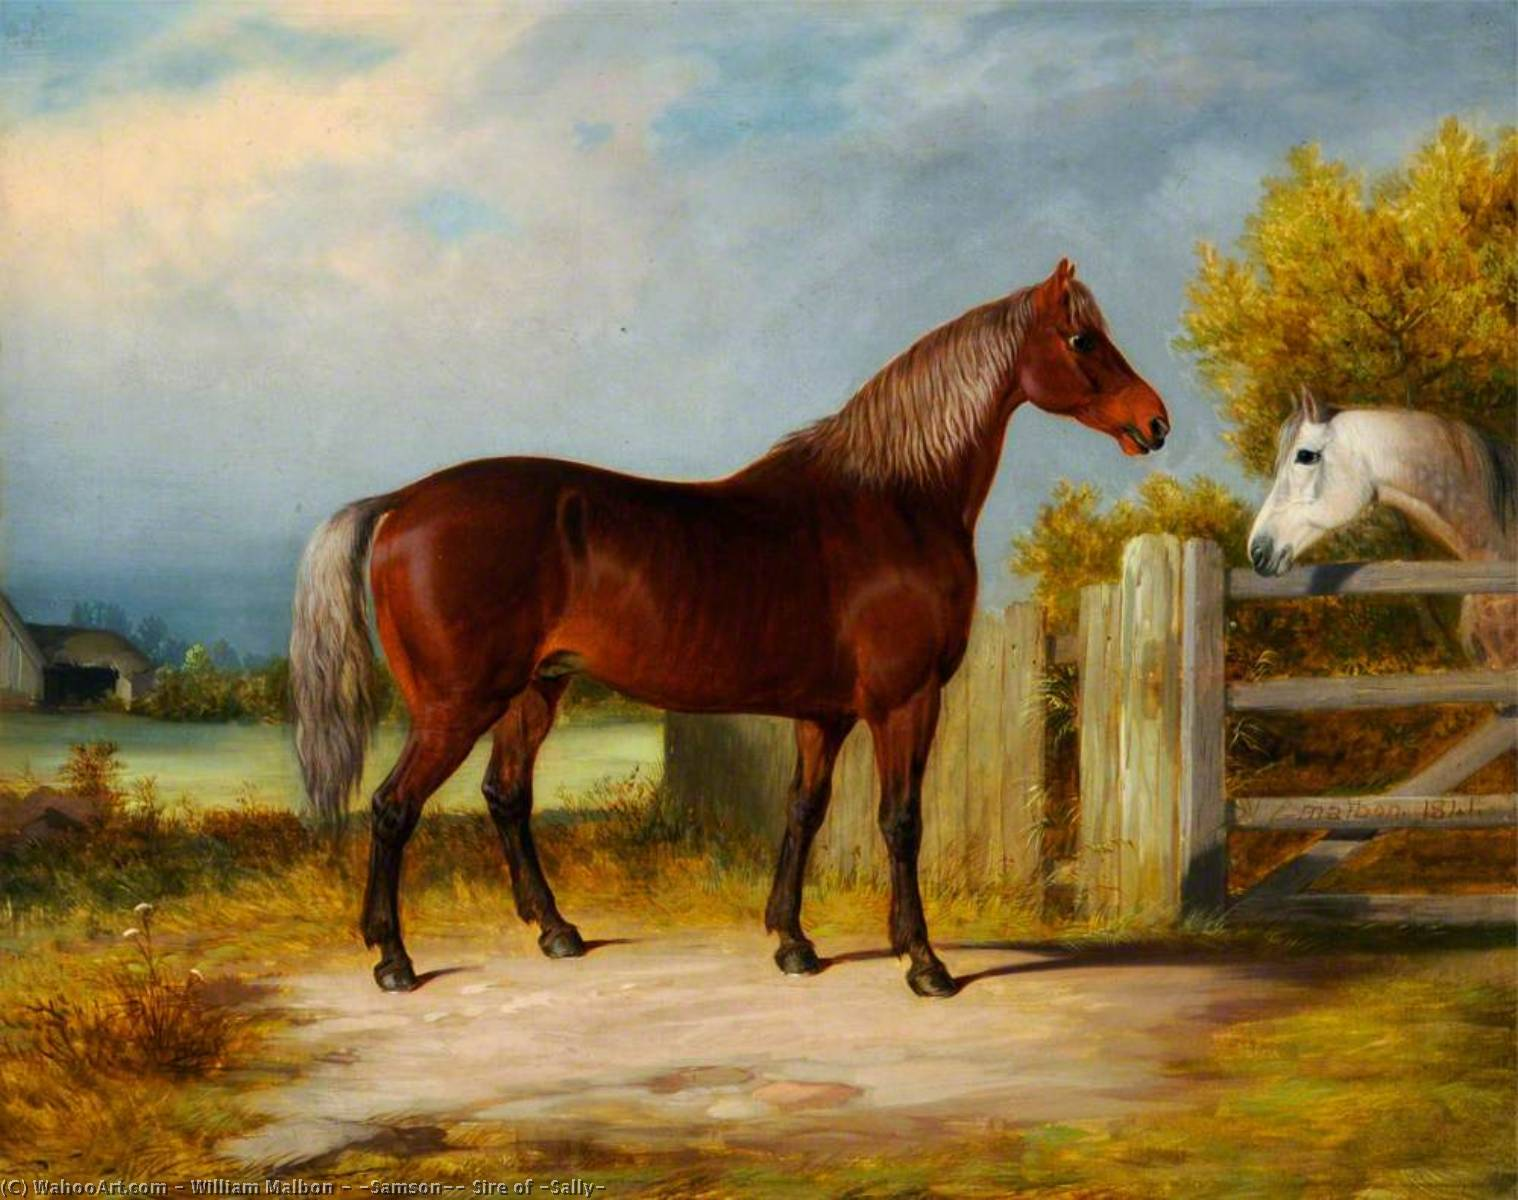 Achat Reproductions D'œuvres D'art | `Samson` , Sire de `Sally`, 1841 de William Malbon | ArtsDot.com